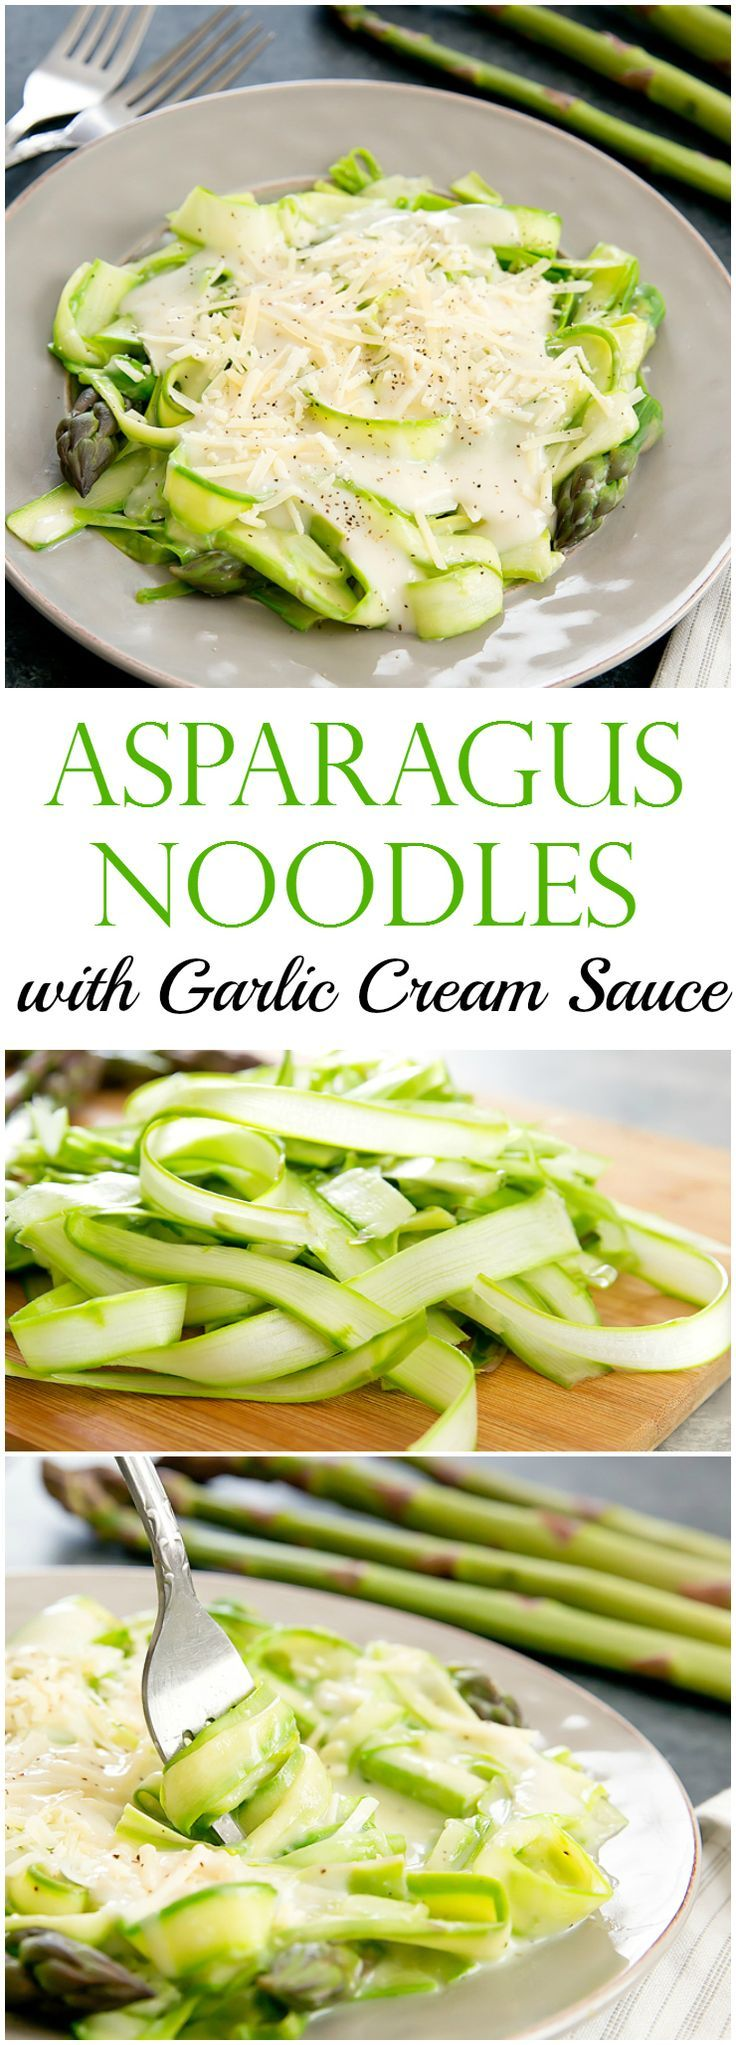 Asparagus Noodles with Skinny Garlic Cream Sauce. Thinly shaved asparagus works as a great low carb, gluten free pasta substitute.